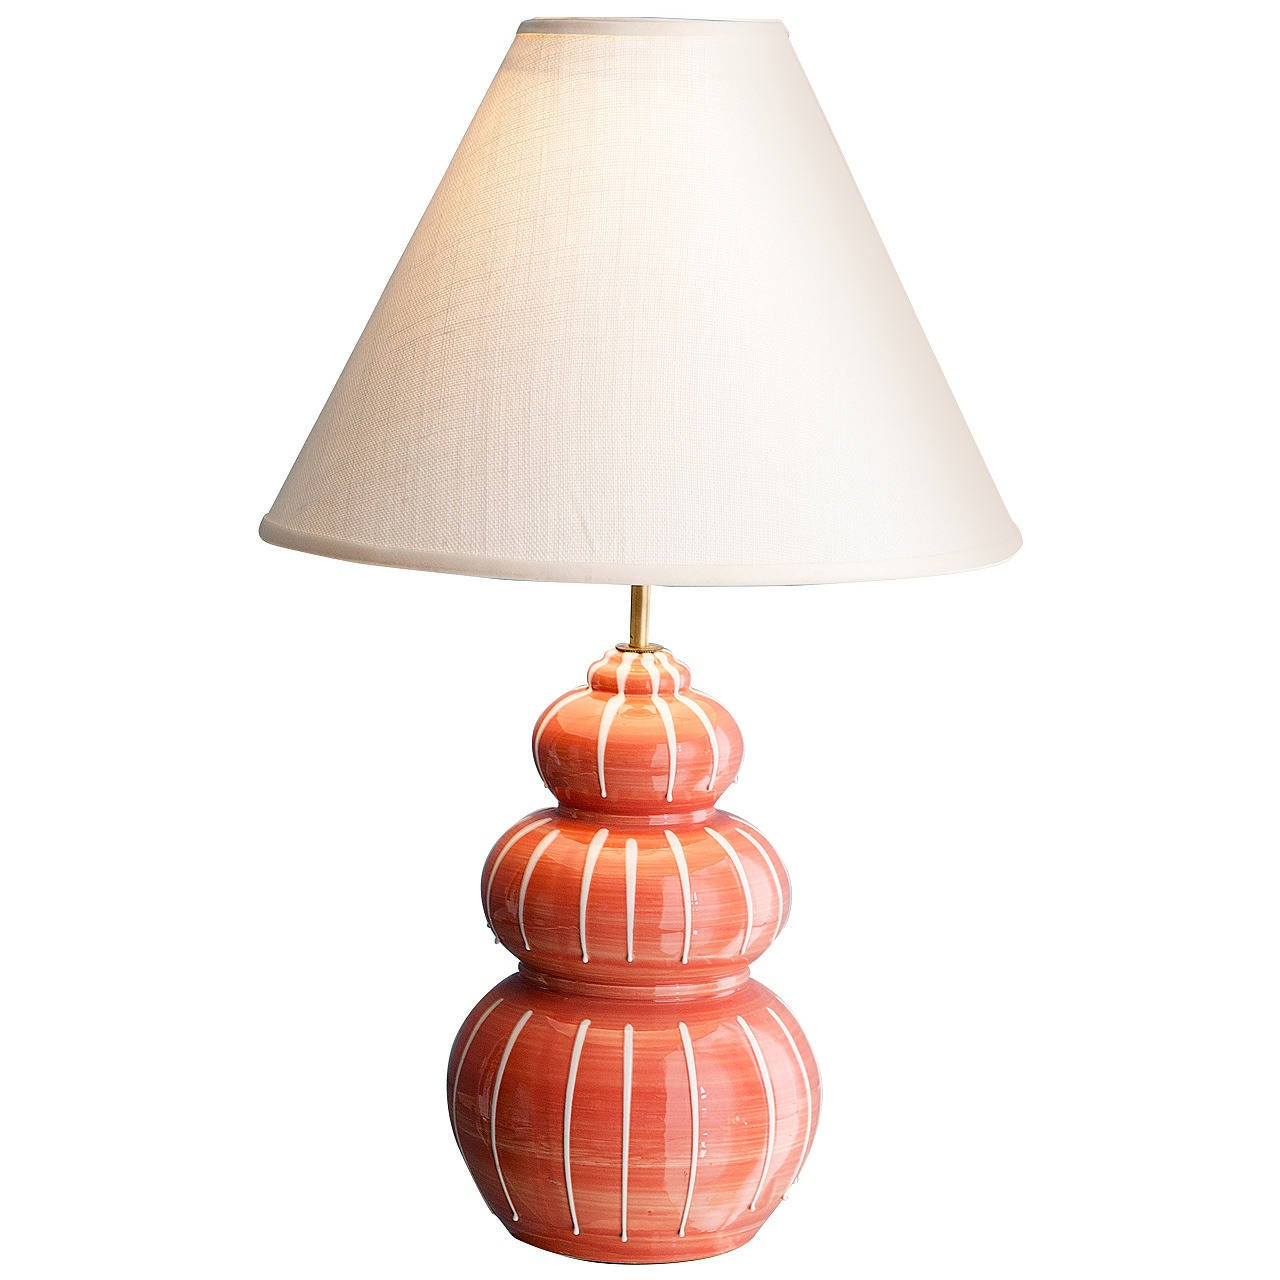 Vintage ceramic table lamp at 1stdibs for Ceramic table lamps